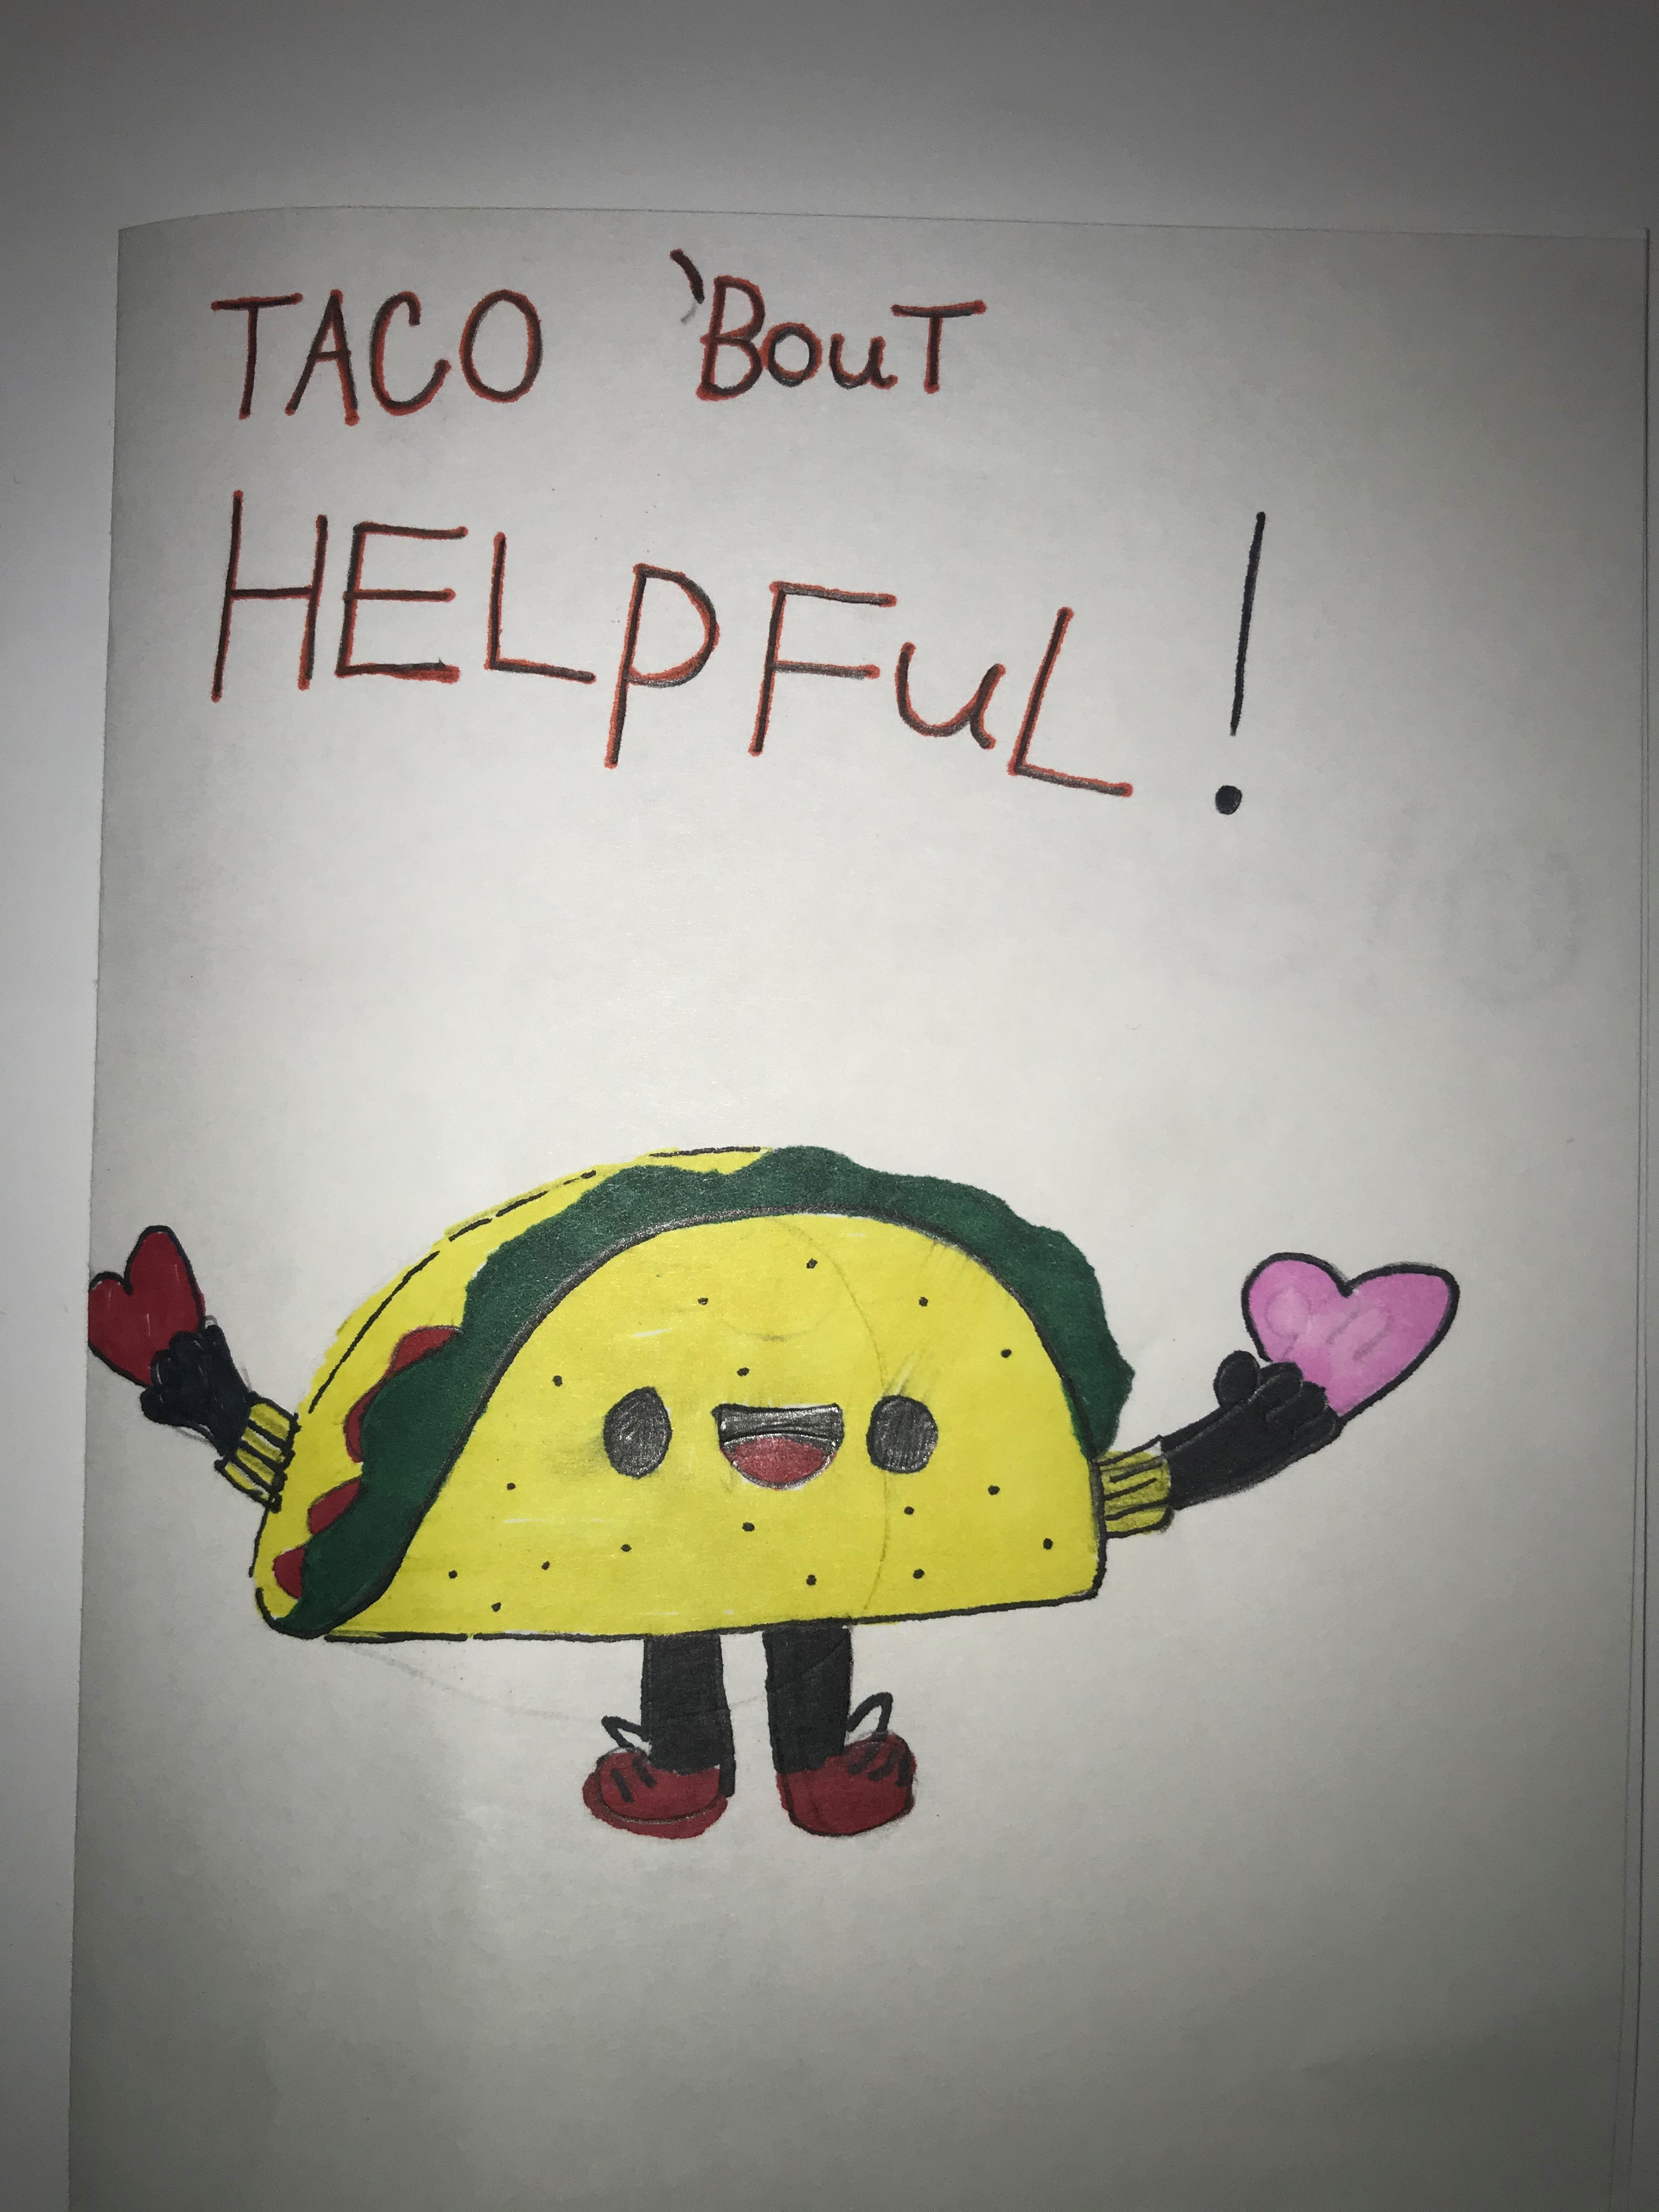 Taco 'bout helpful!